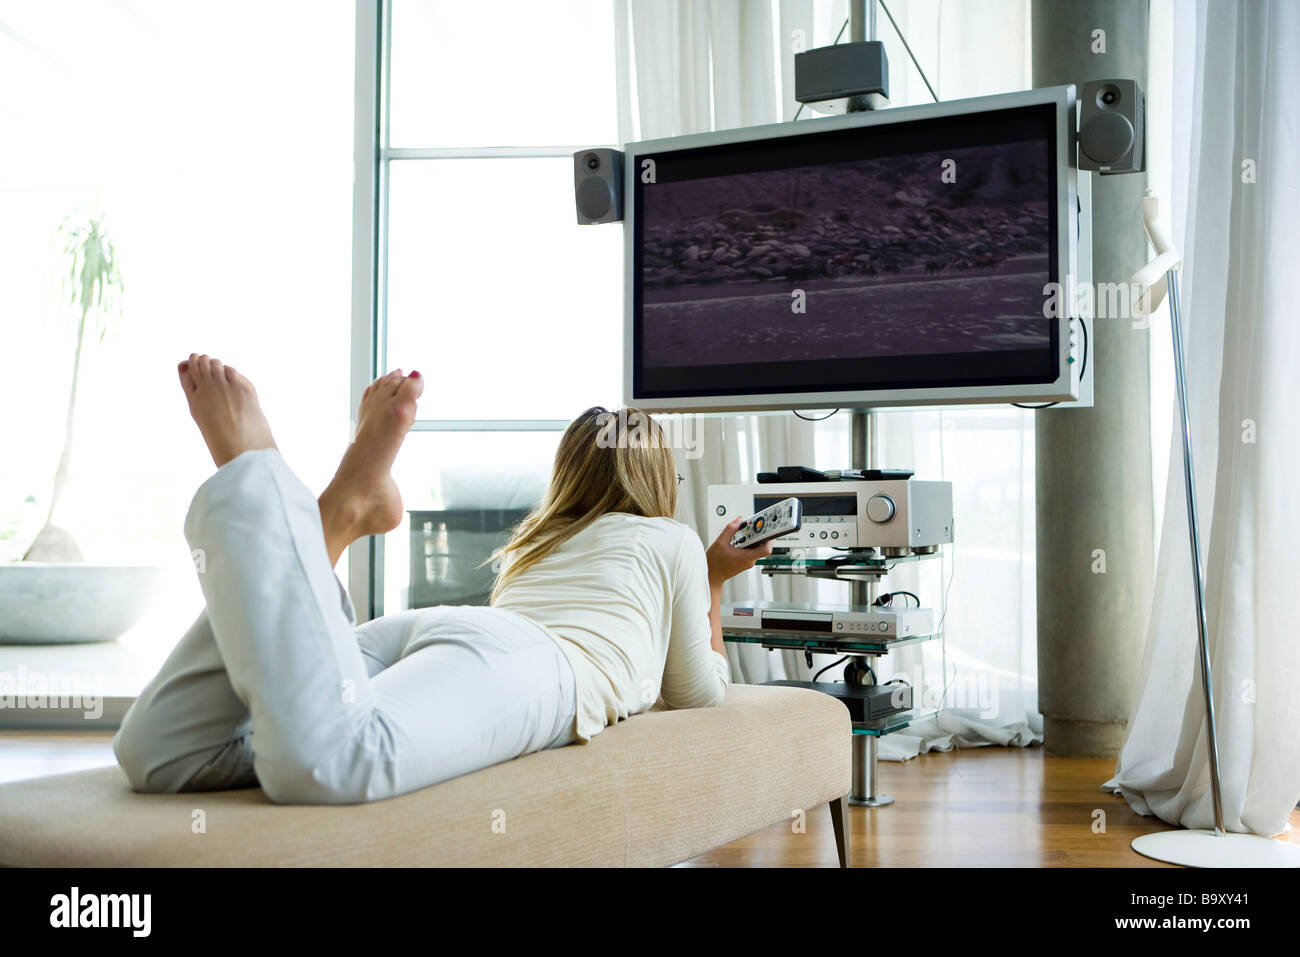 Female lying on chaise longue, watching flat screen television with surround sound - Stock Image